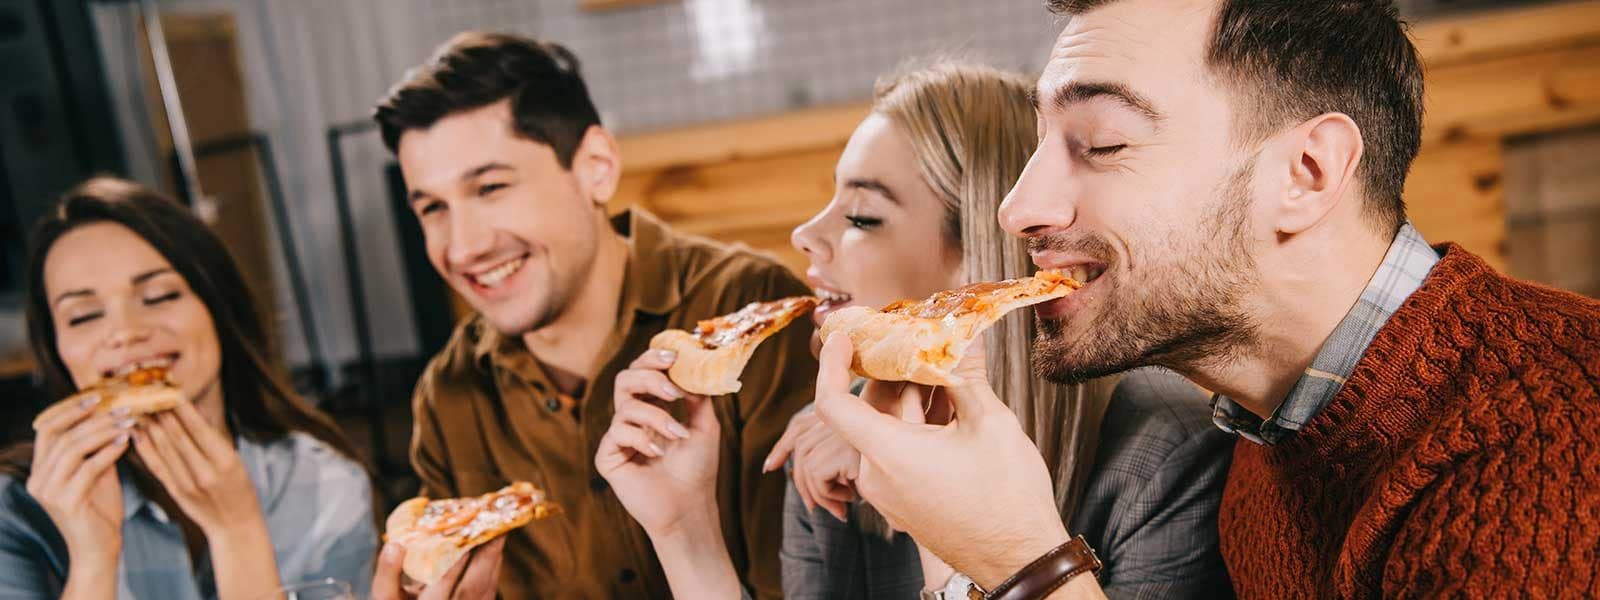 friends enjoying pizza